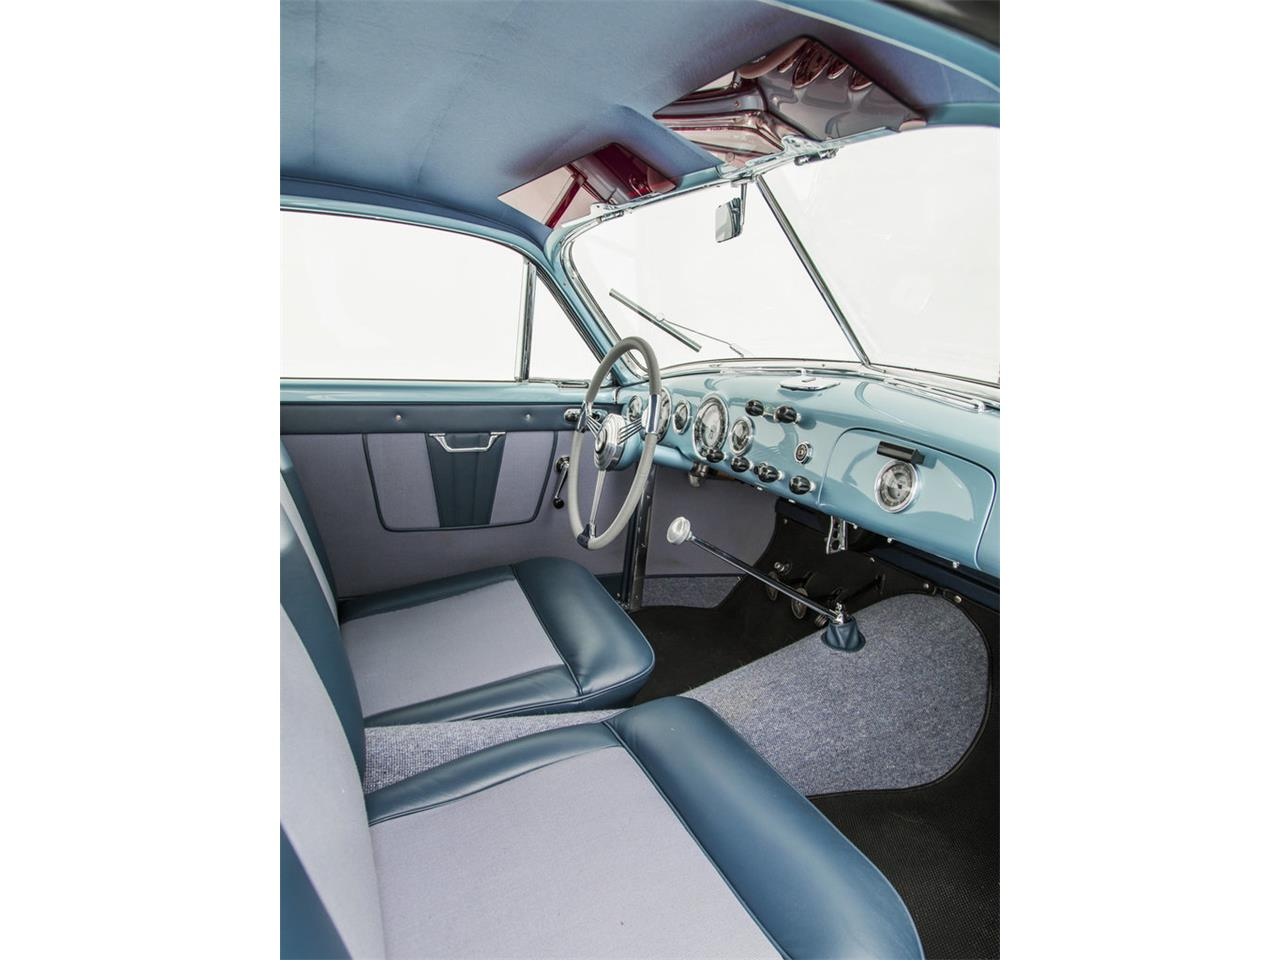 Large Picture of '48 Maserati A6/1500 located in California Auction Vehicle - MZAS